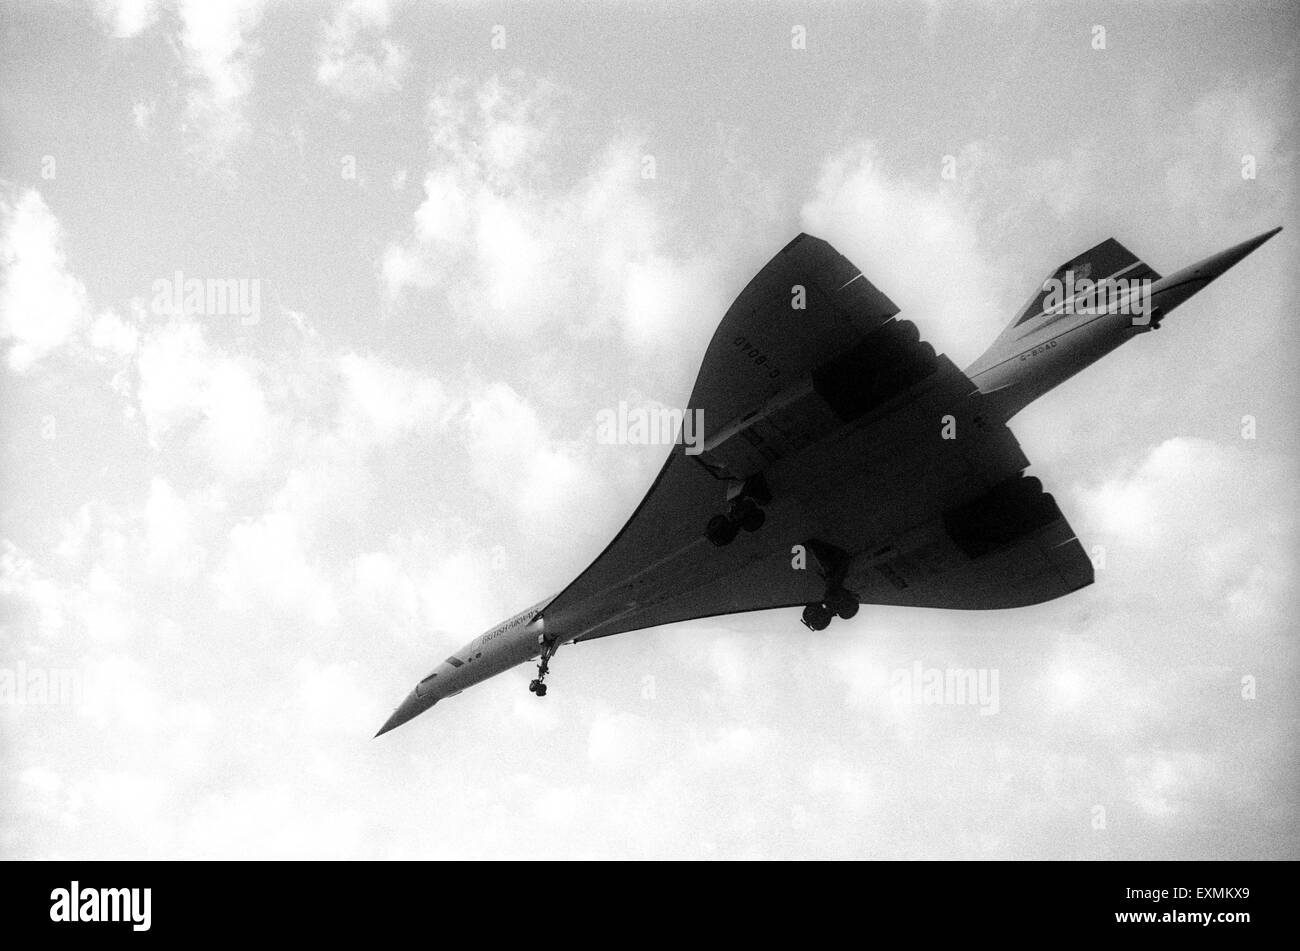 British Airways supersonic passenger aircraft Concorde lands at Sahar Airport Chatrapati Shivaji International Airport - Stock Image